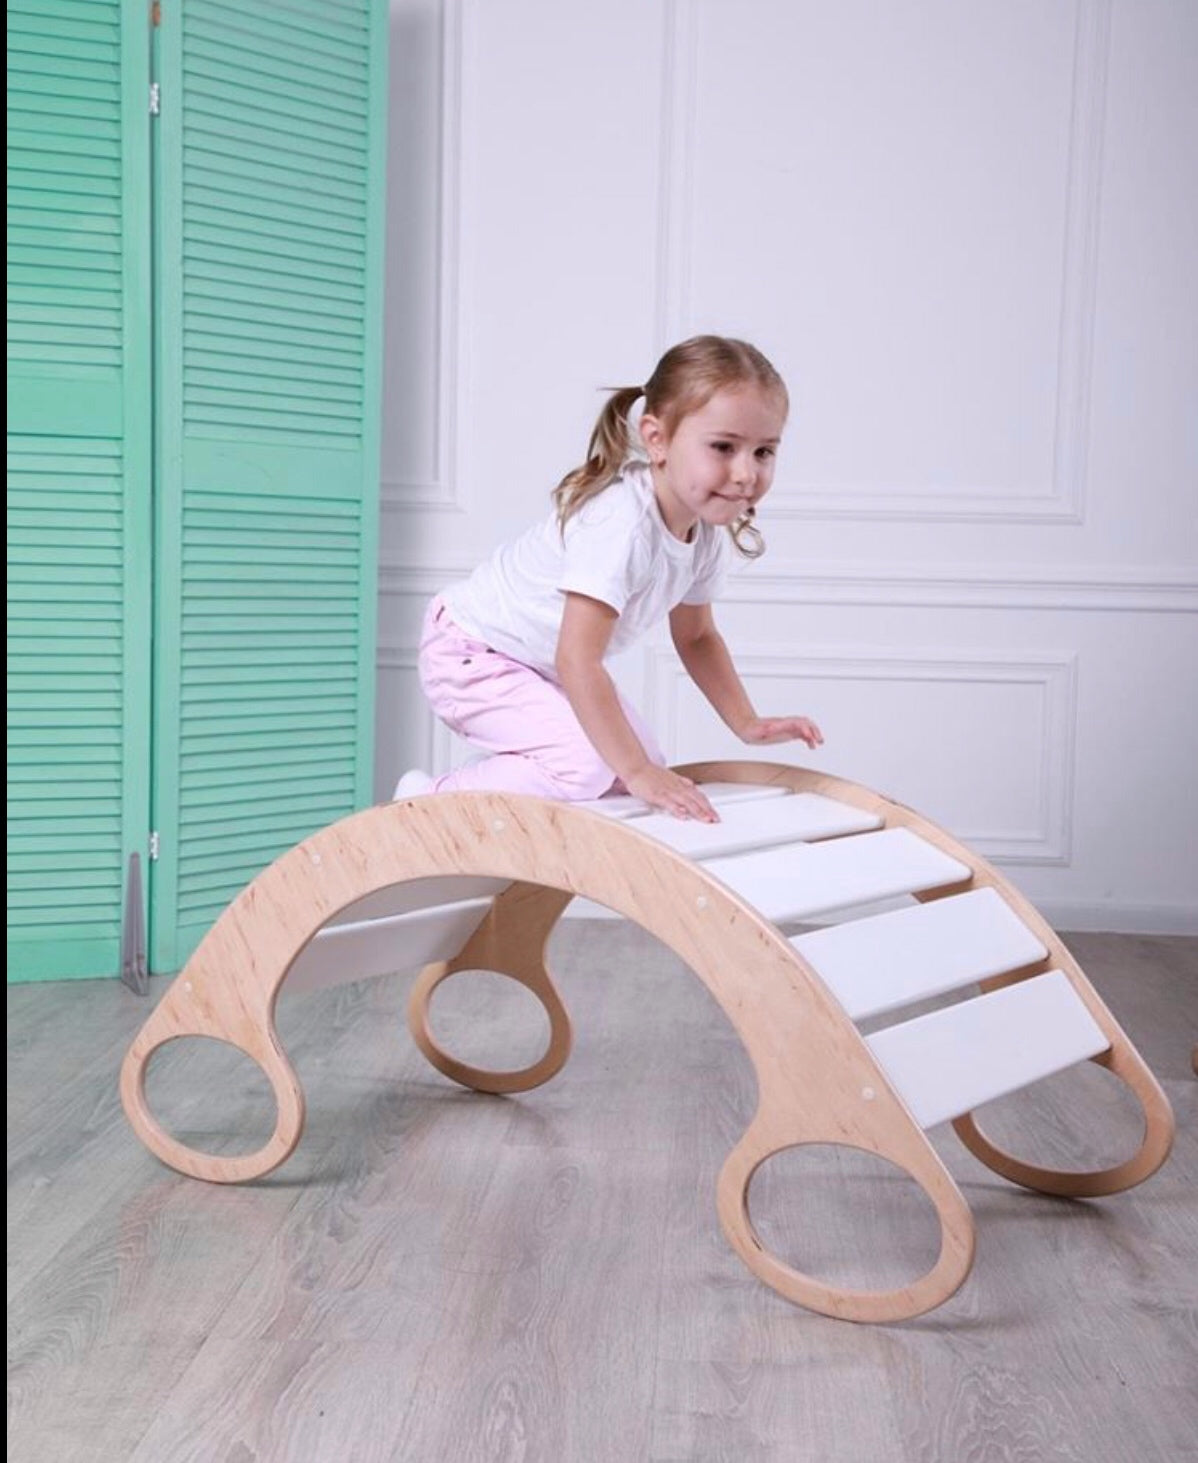 Rocking balance board (white wood)